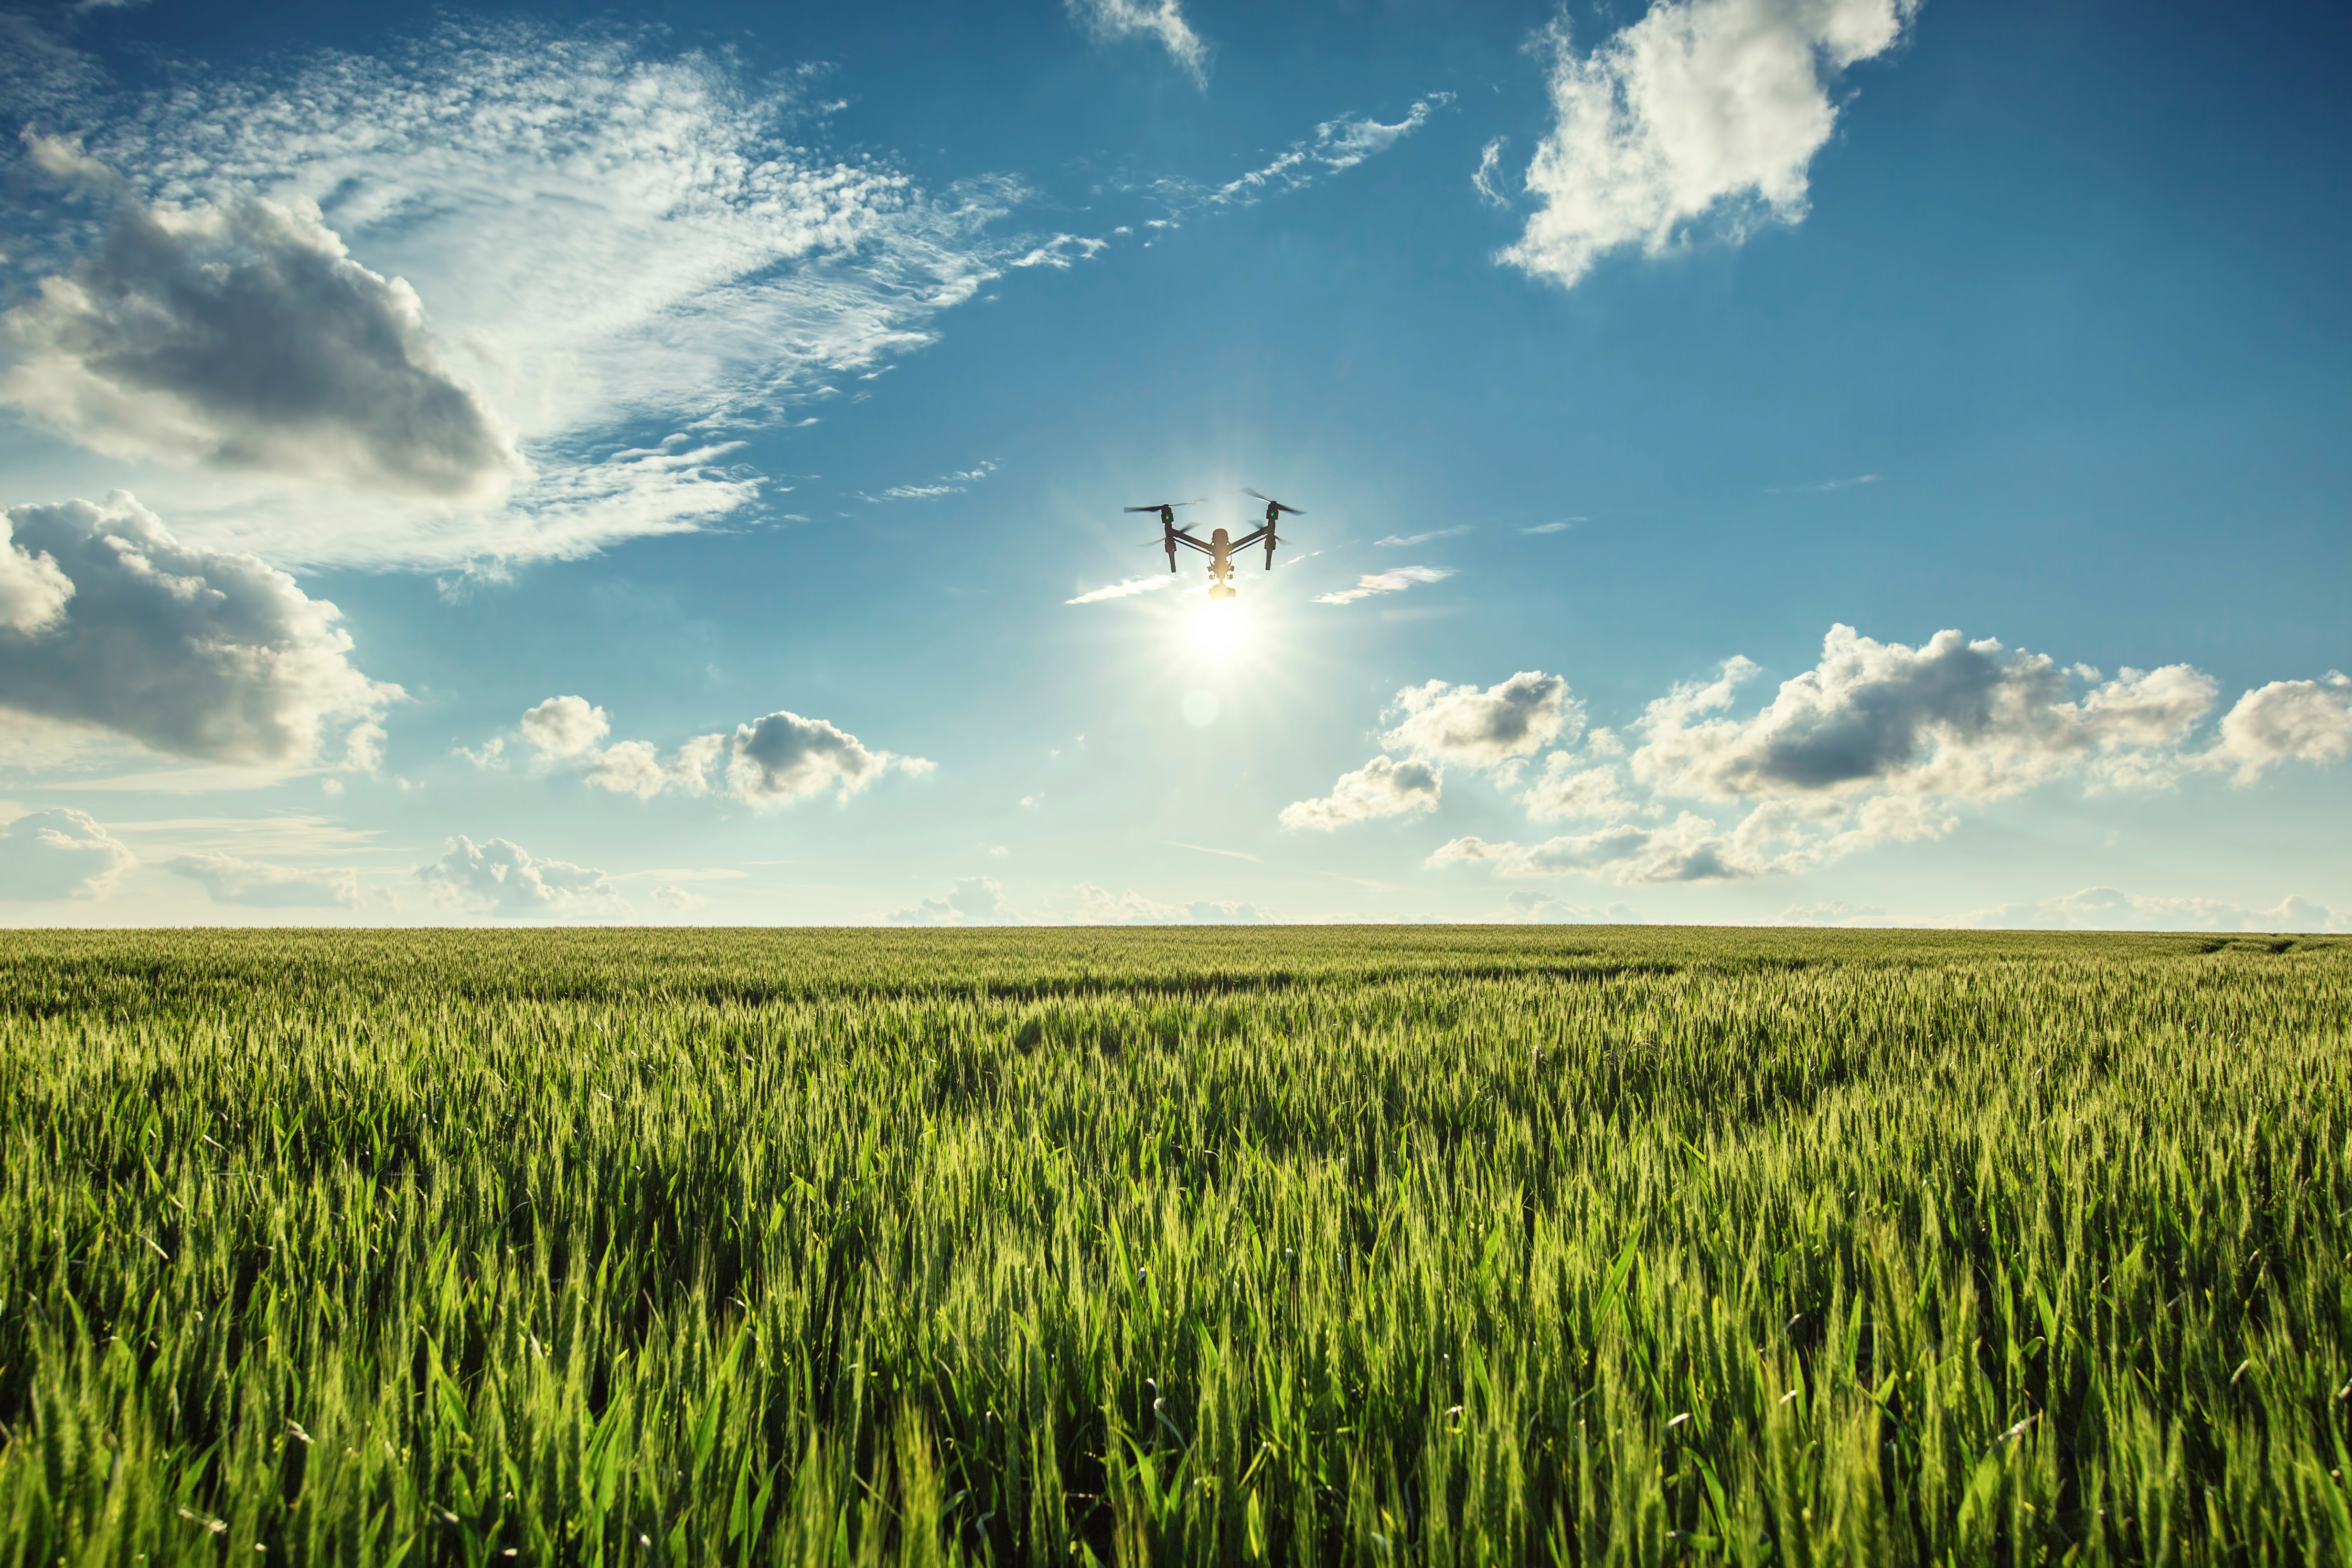 Flying_Drone-Precision_Agriculture.jpg